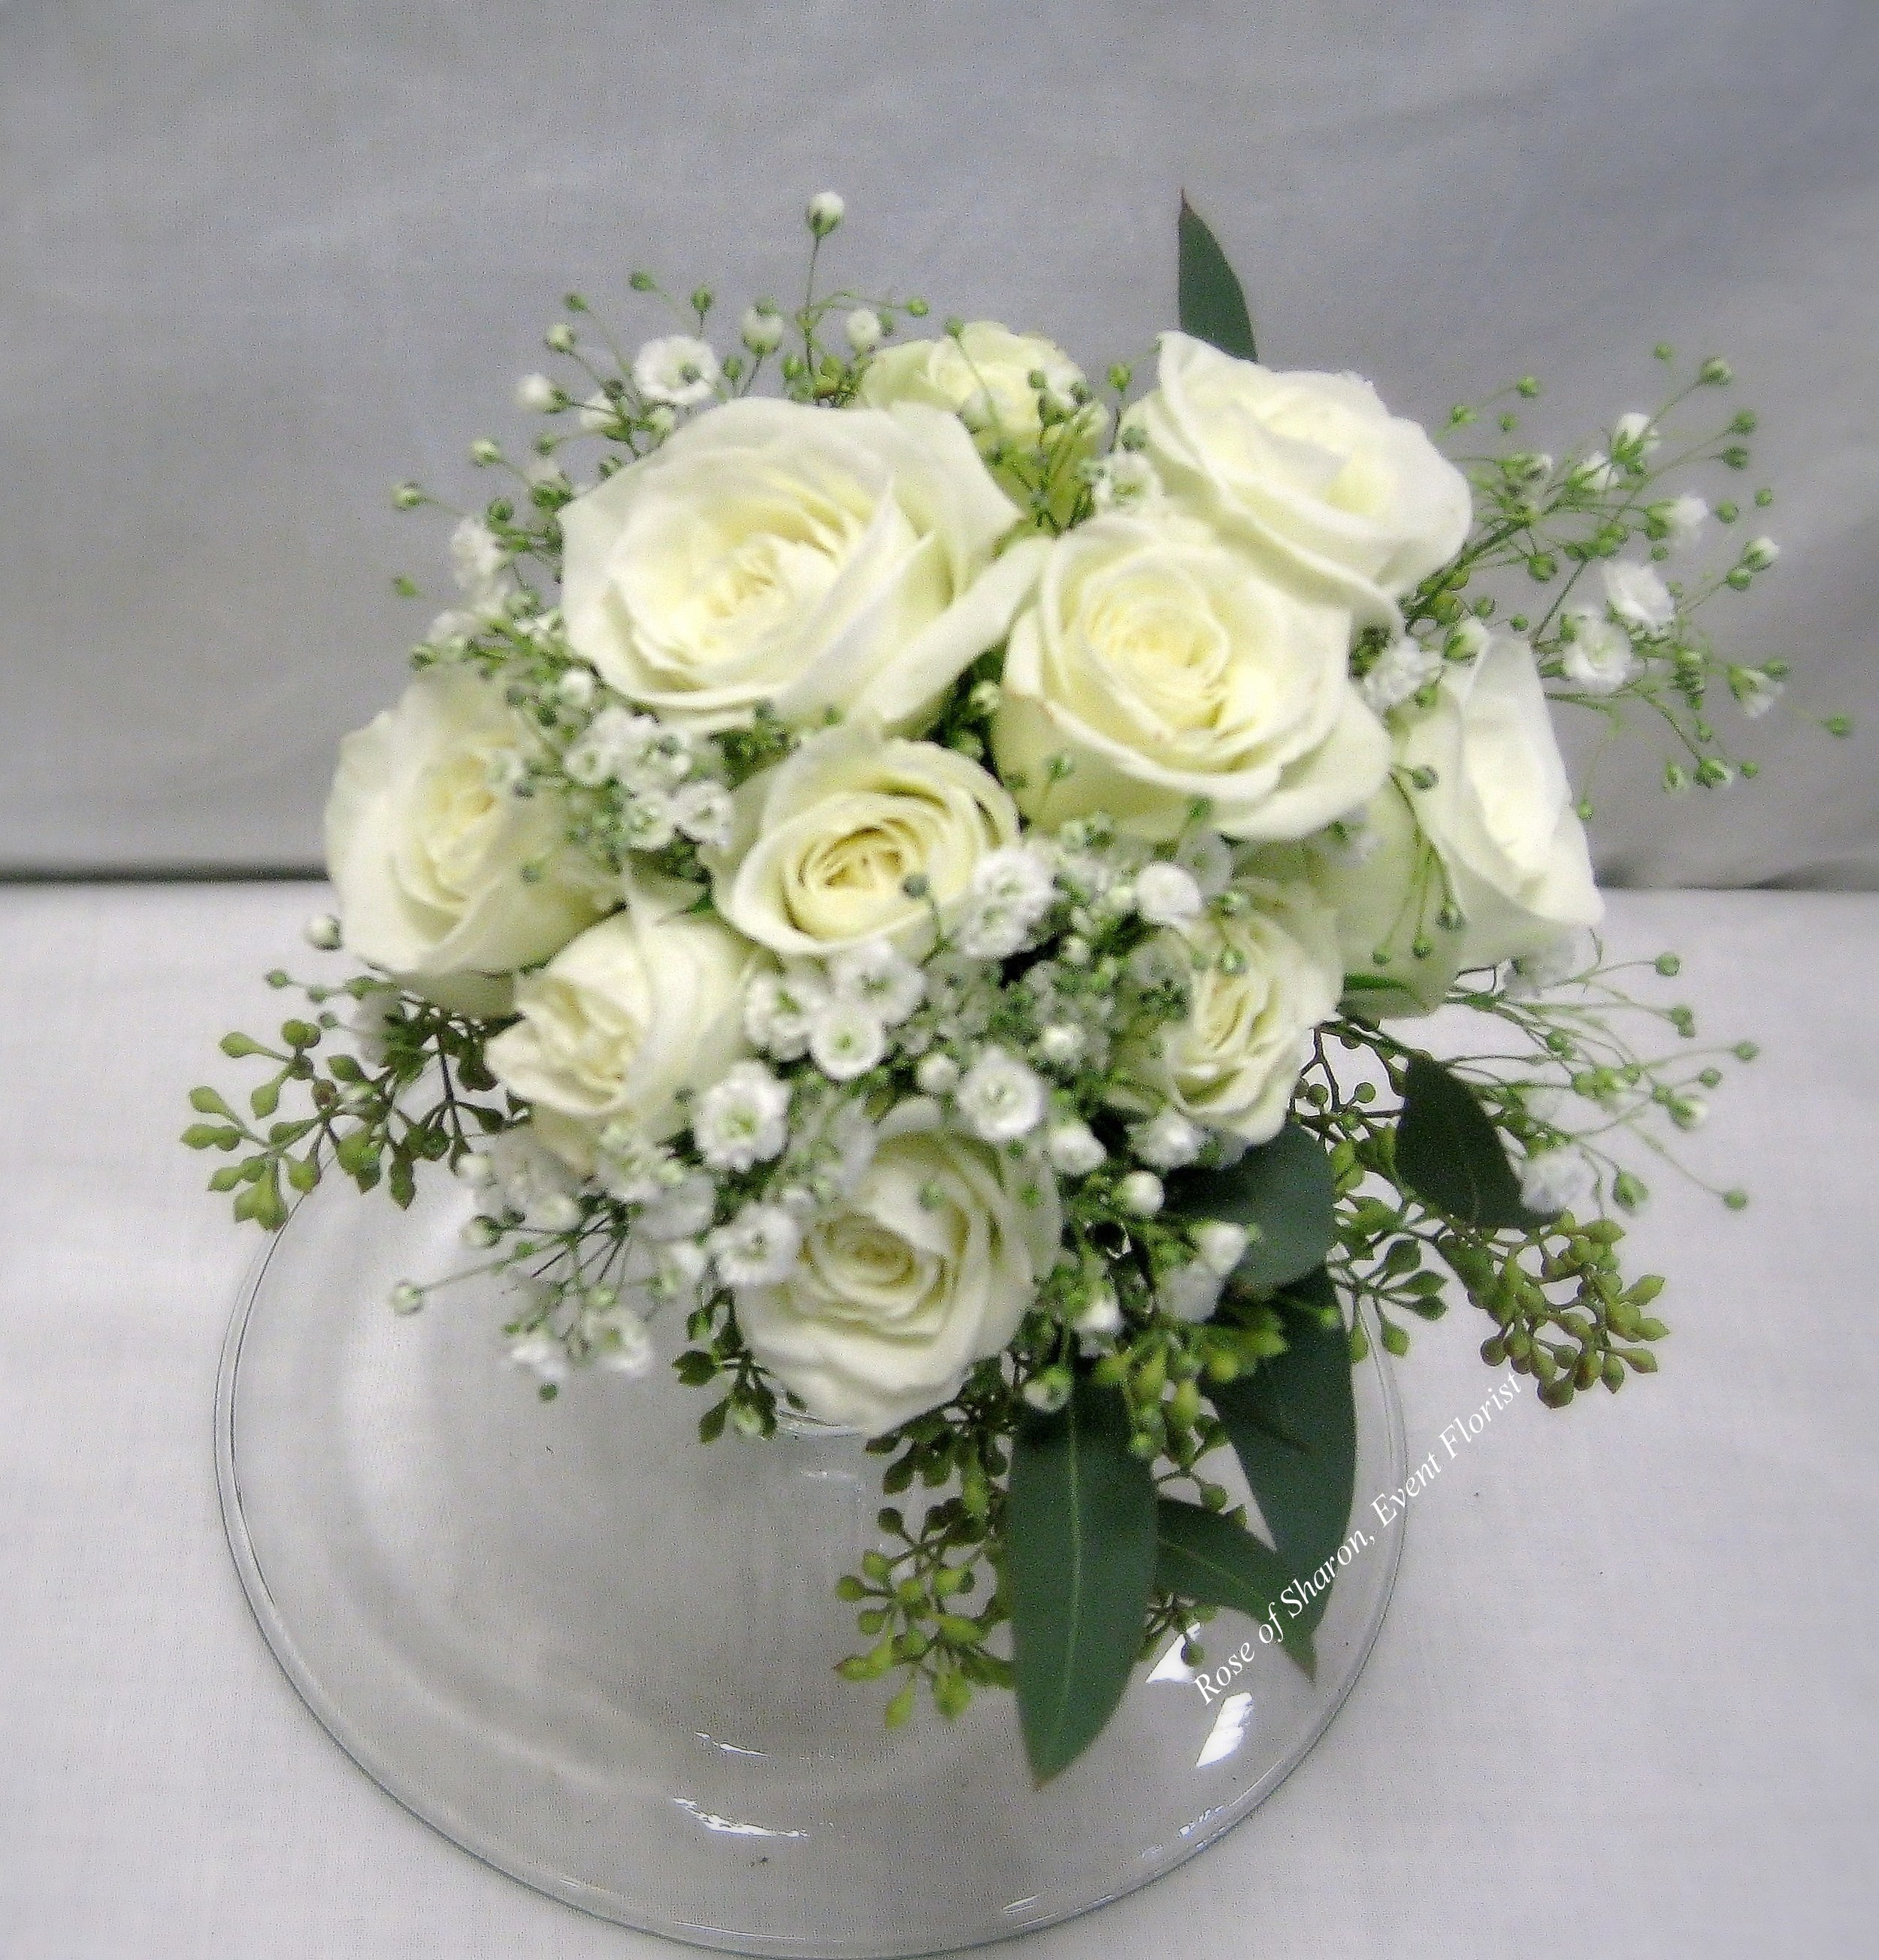 Hand-Tied White Rose and Baby's Breath Bouquet. Rose of Sharon Floral Designs